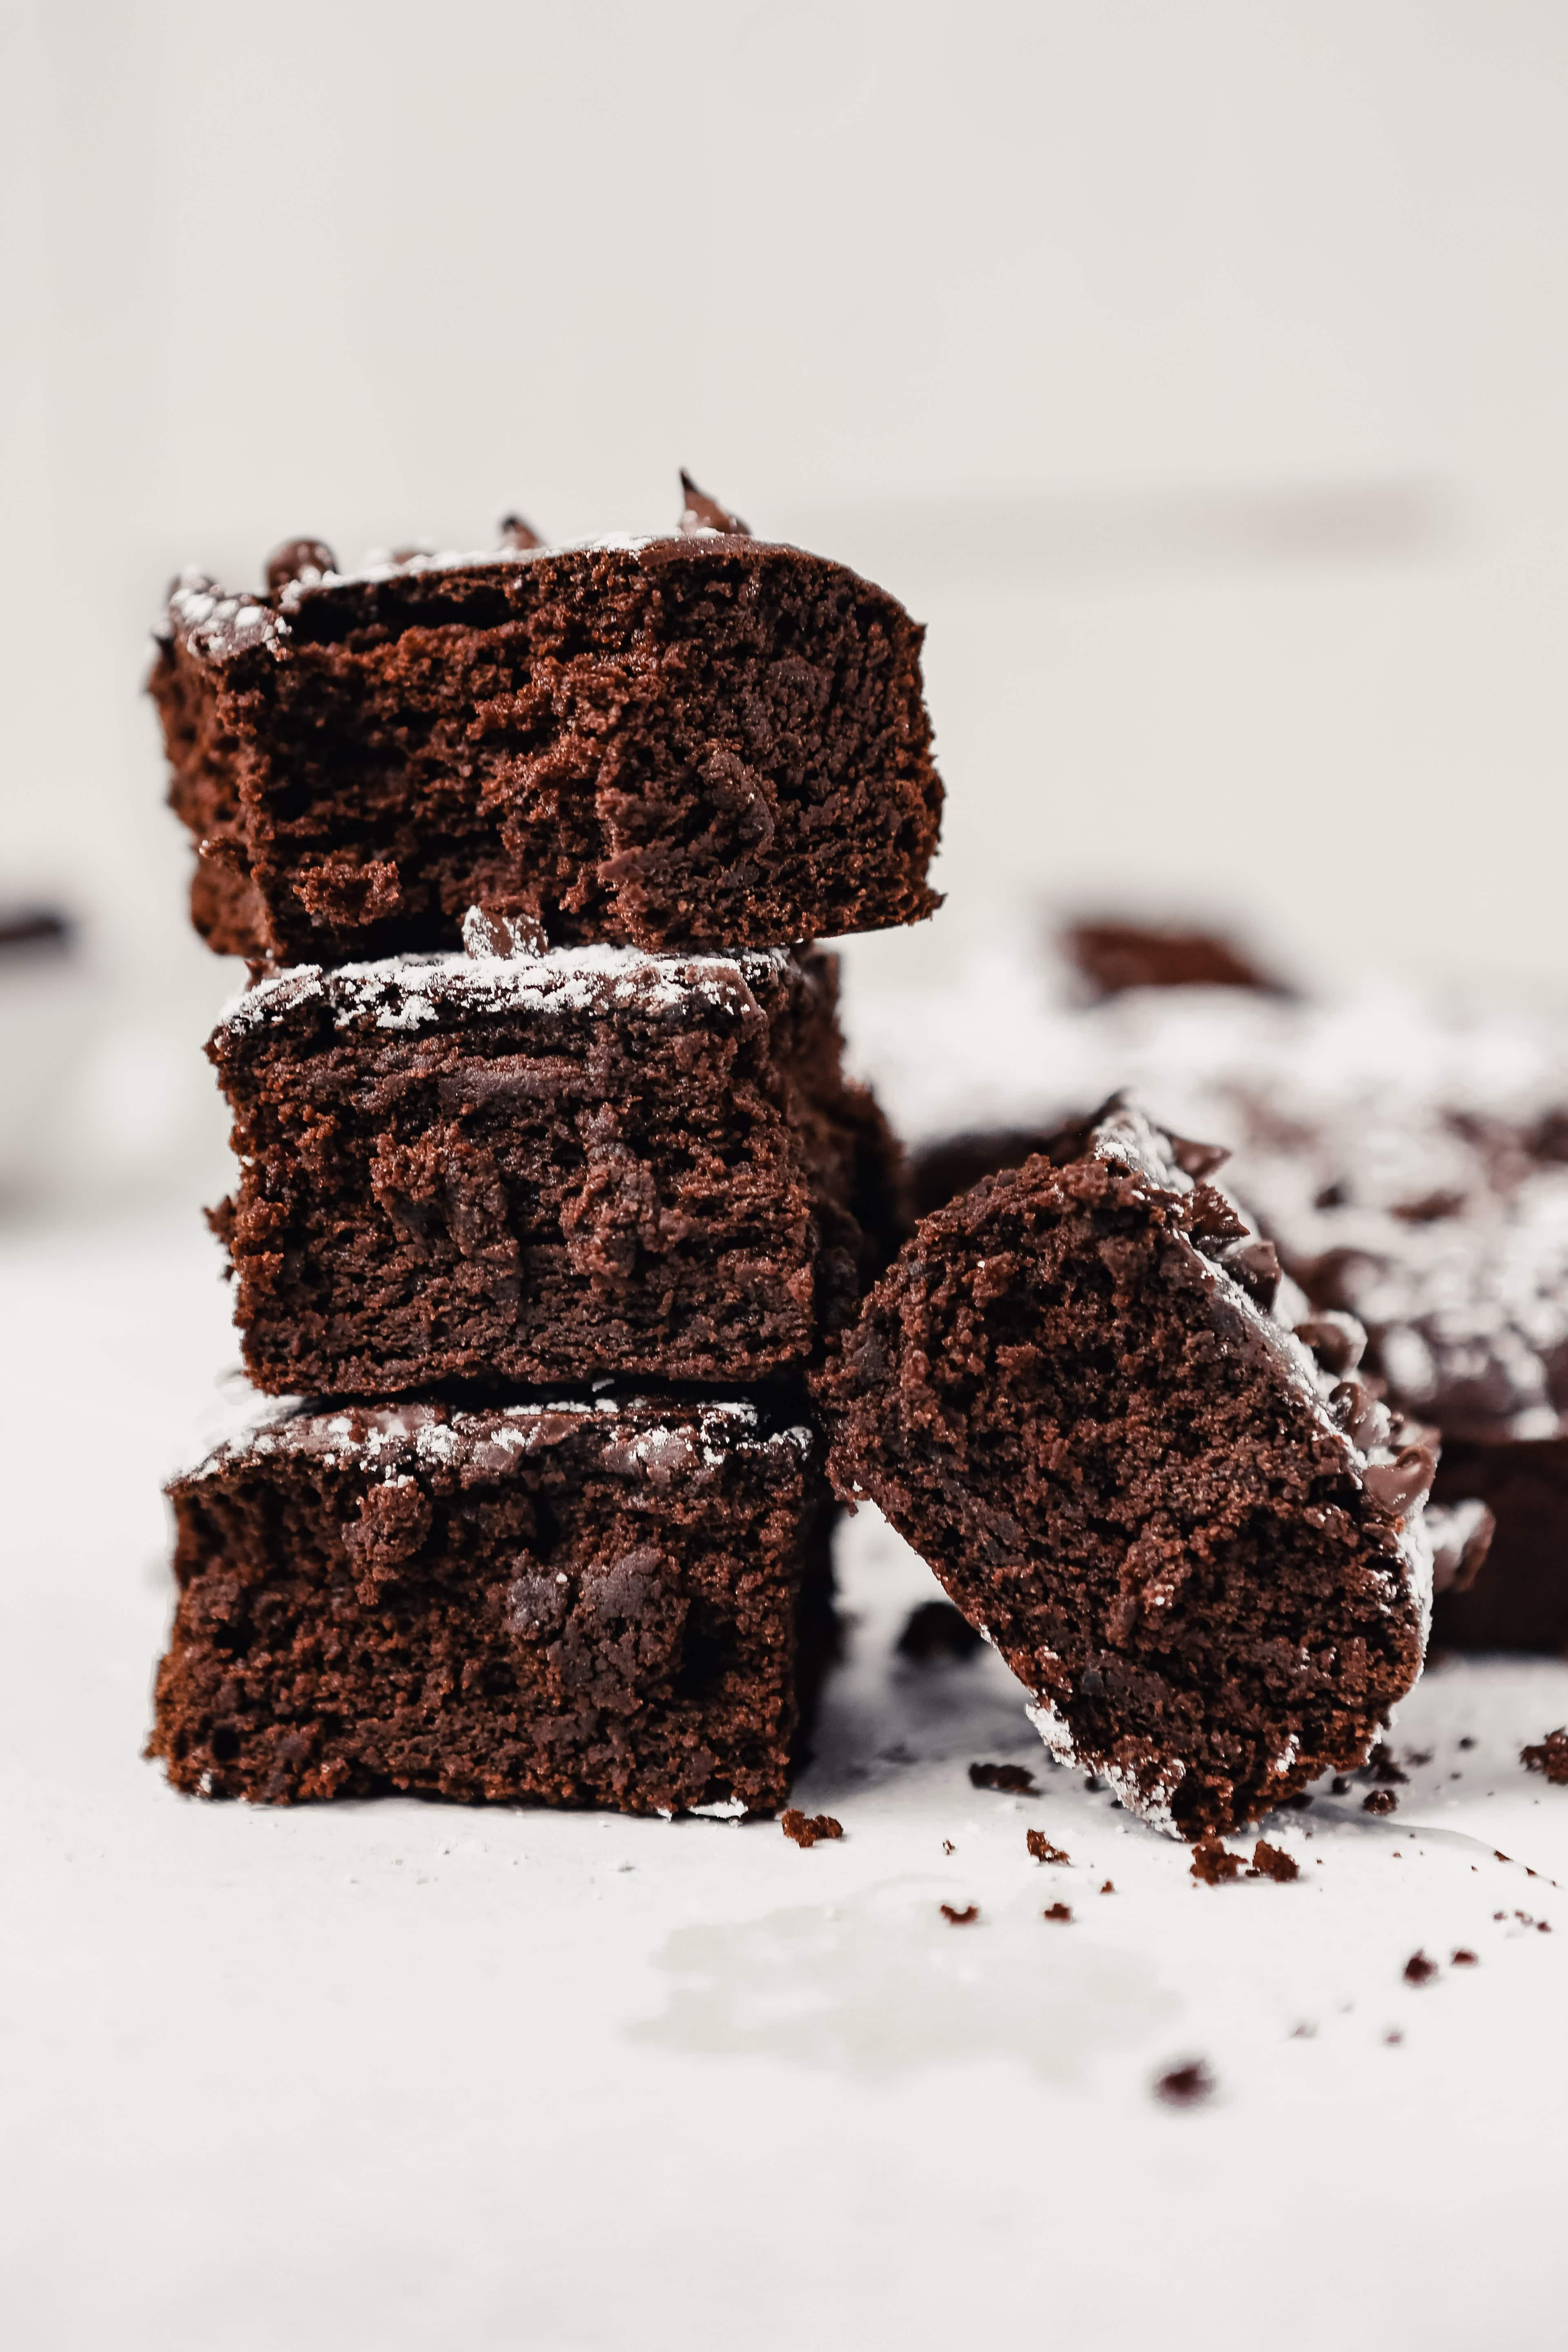 Photograph of a batch of brownies stacked on top of eachother on a white surface cut into squares and dusted with powdered sugar